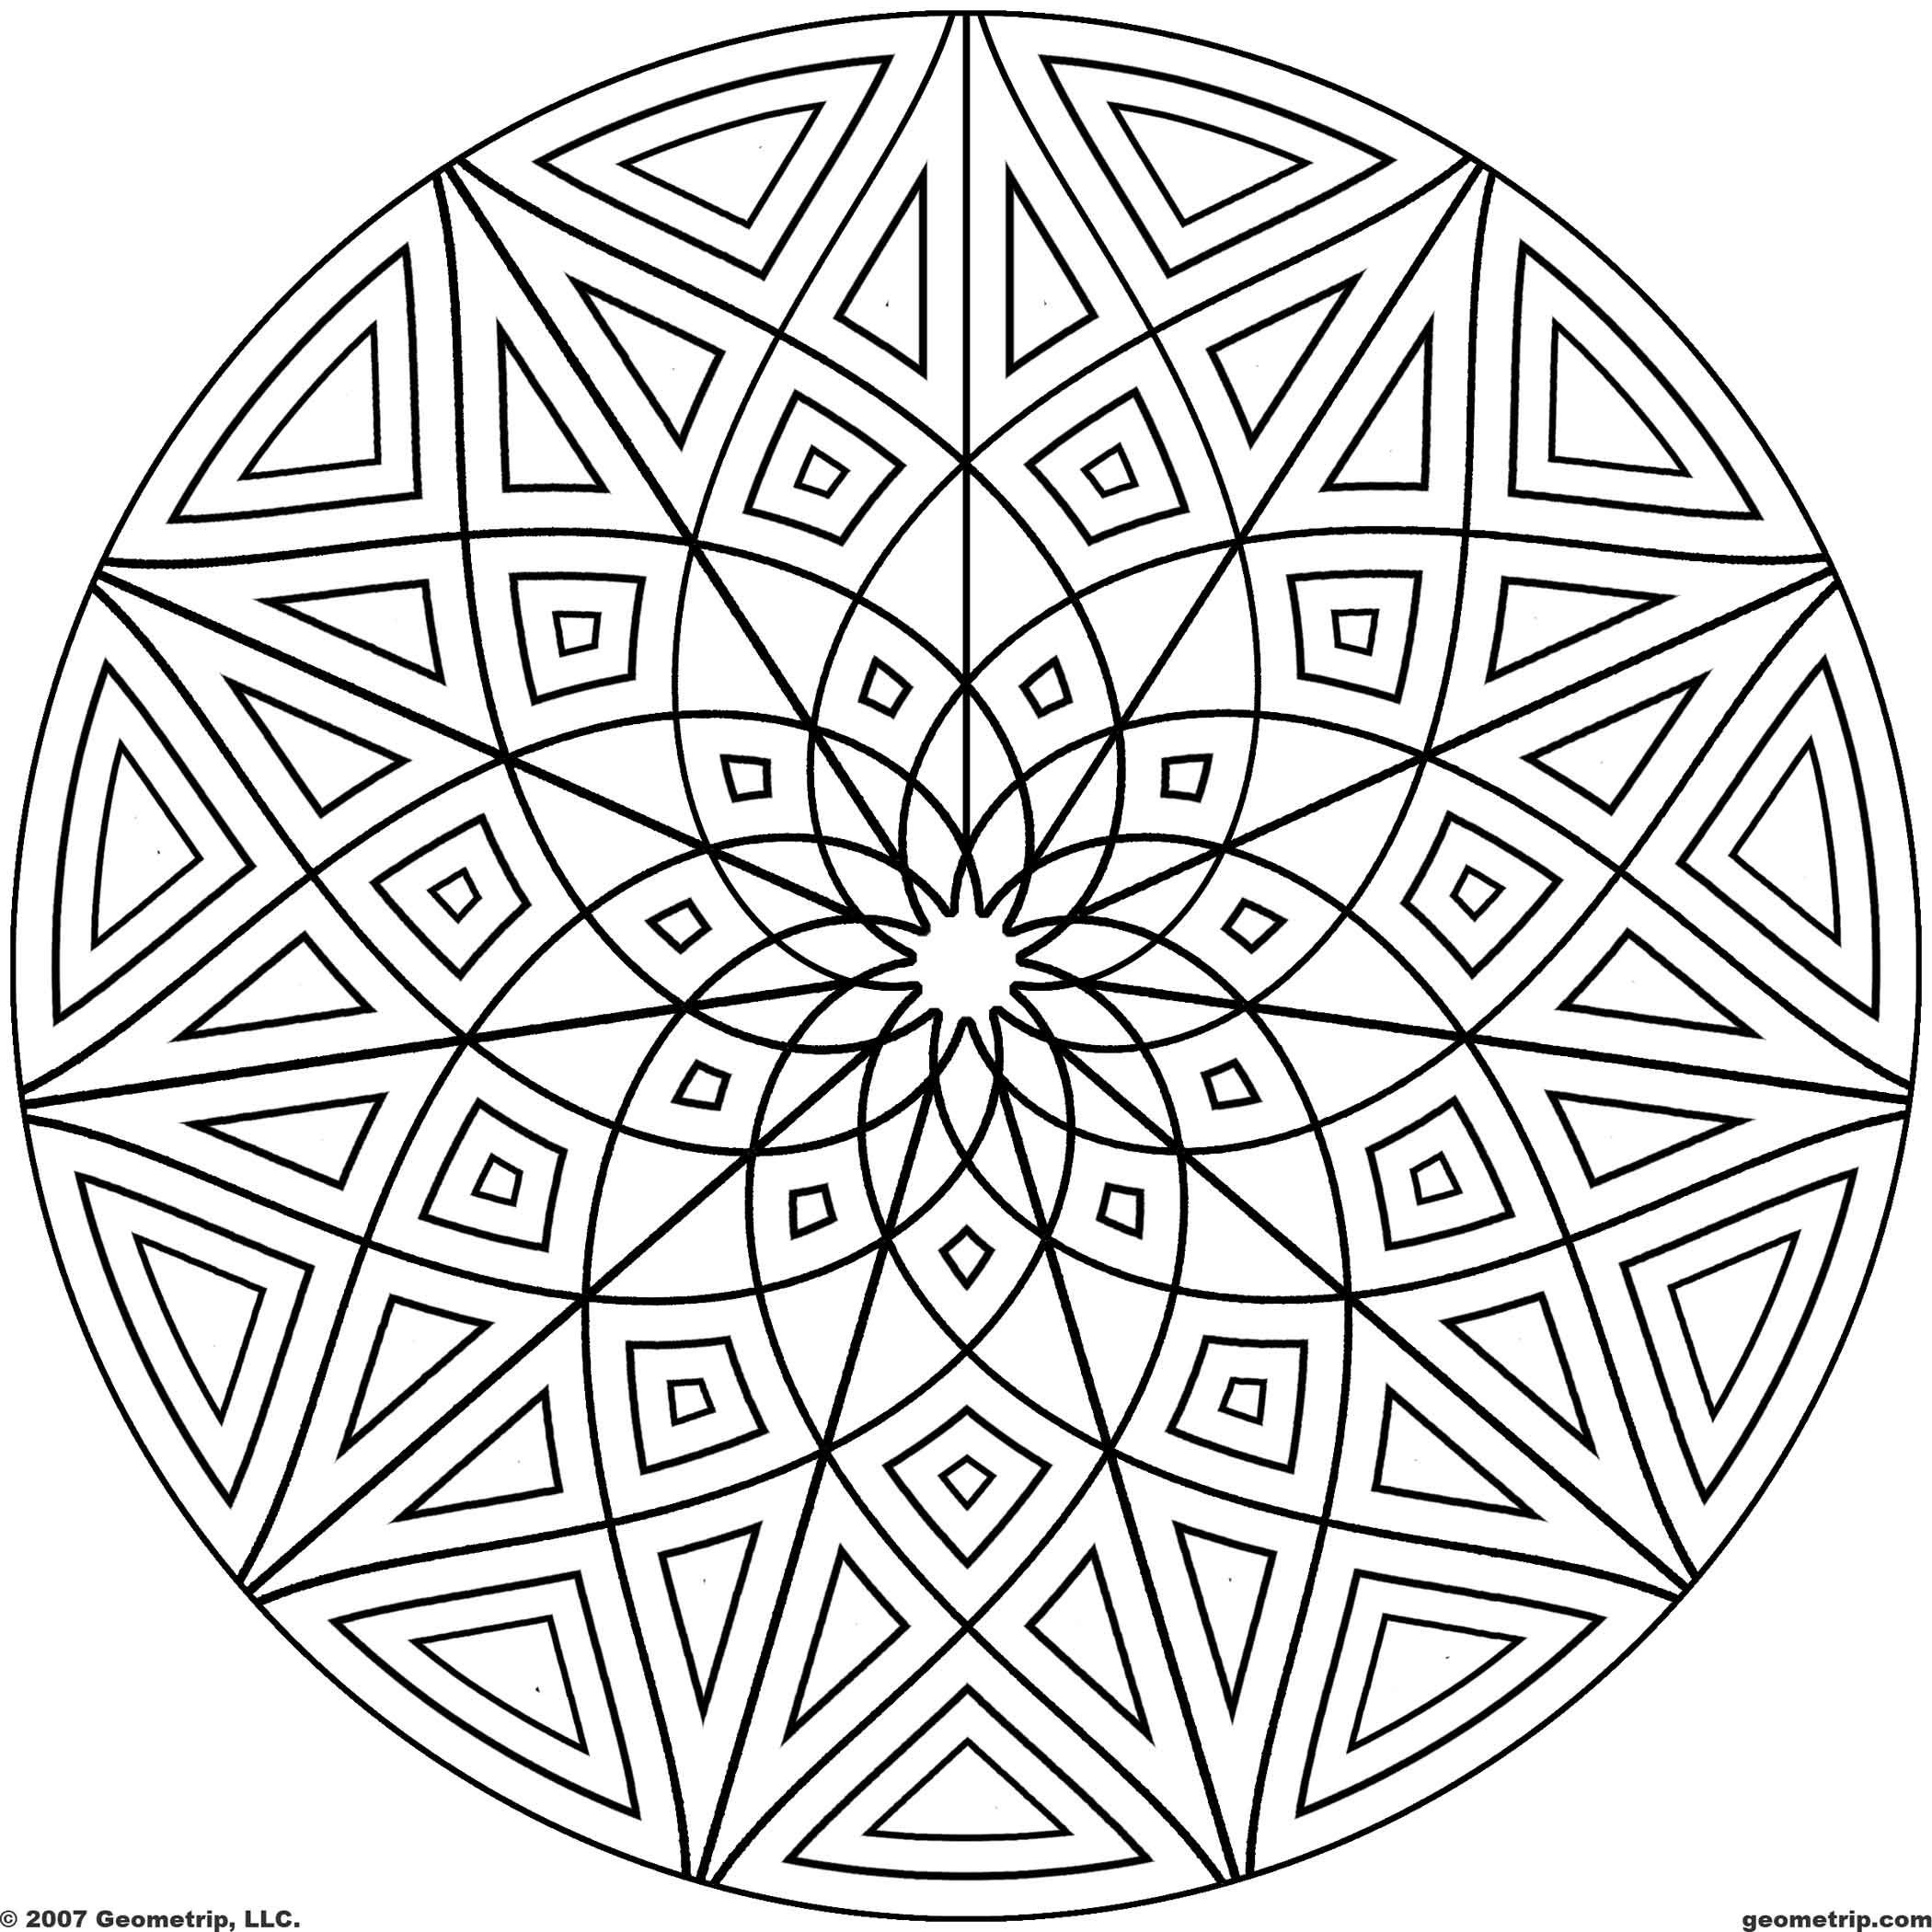 Geometric Shape Coloring Pages - Coloring Home